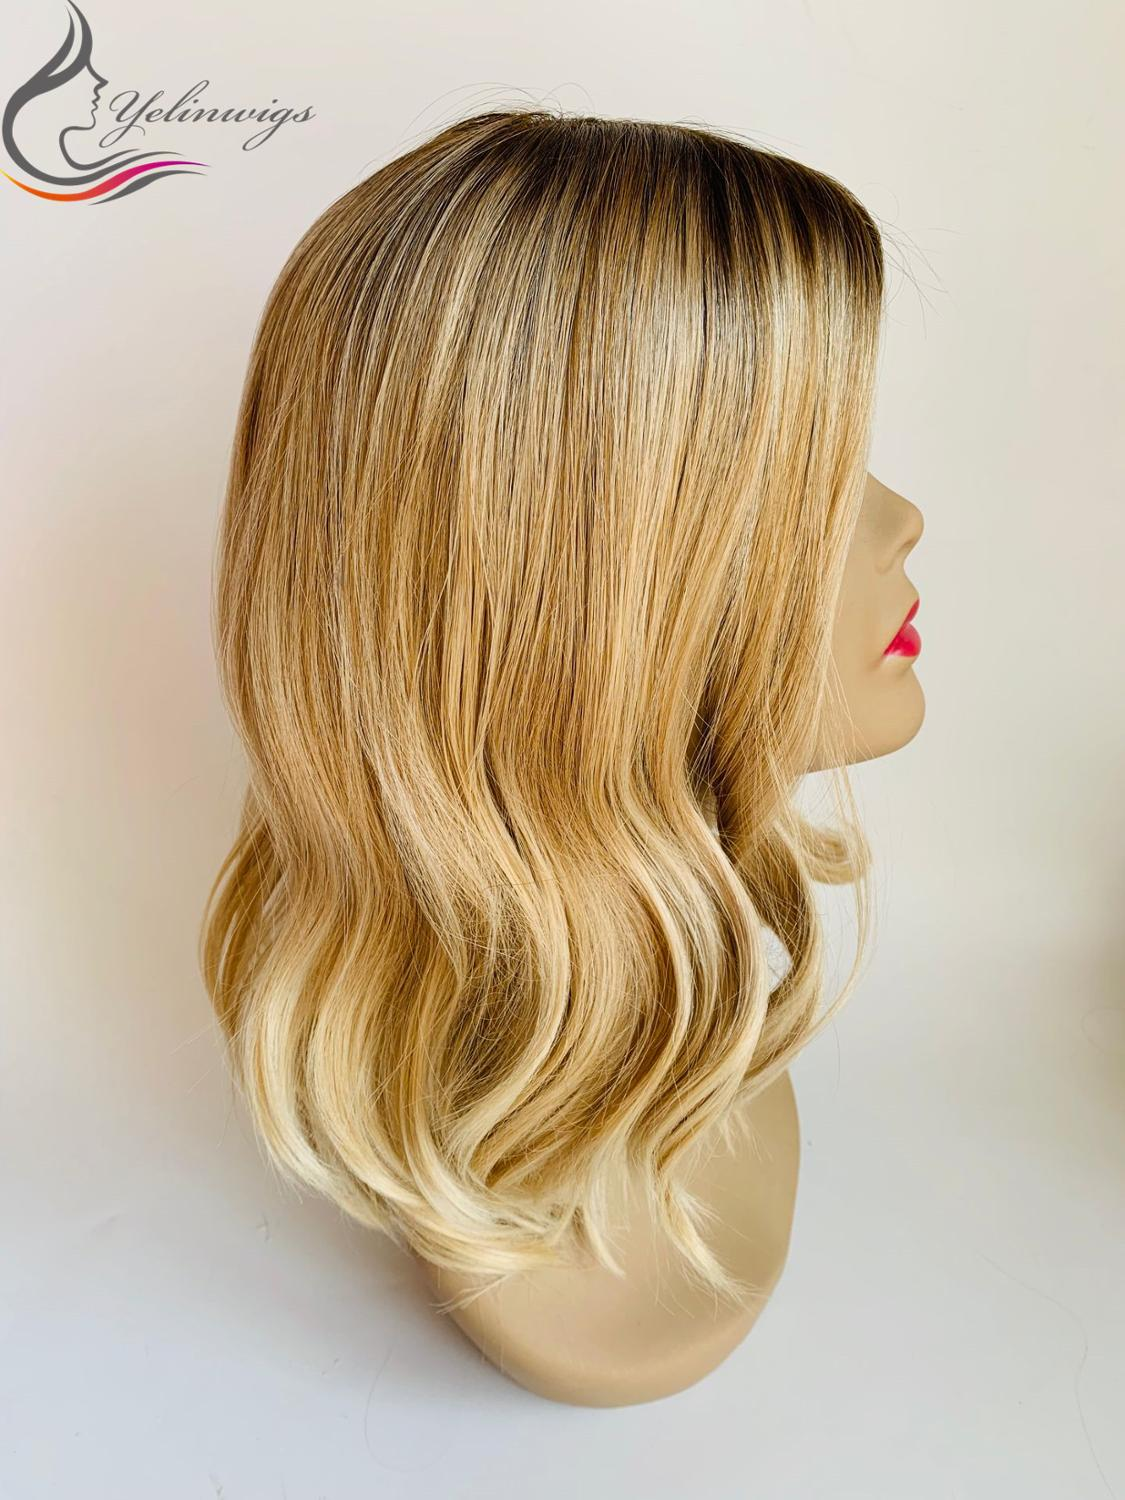 Hot Sale Unprocessed Silk Base European Hair Blonde Color Wigs Fashion Color Jewish Kosher Wigs Small Layer